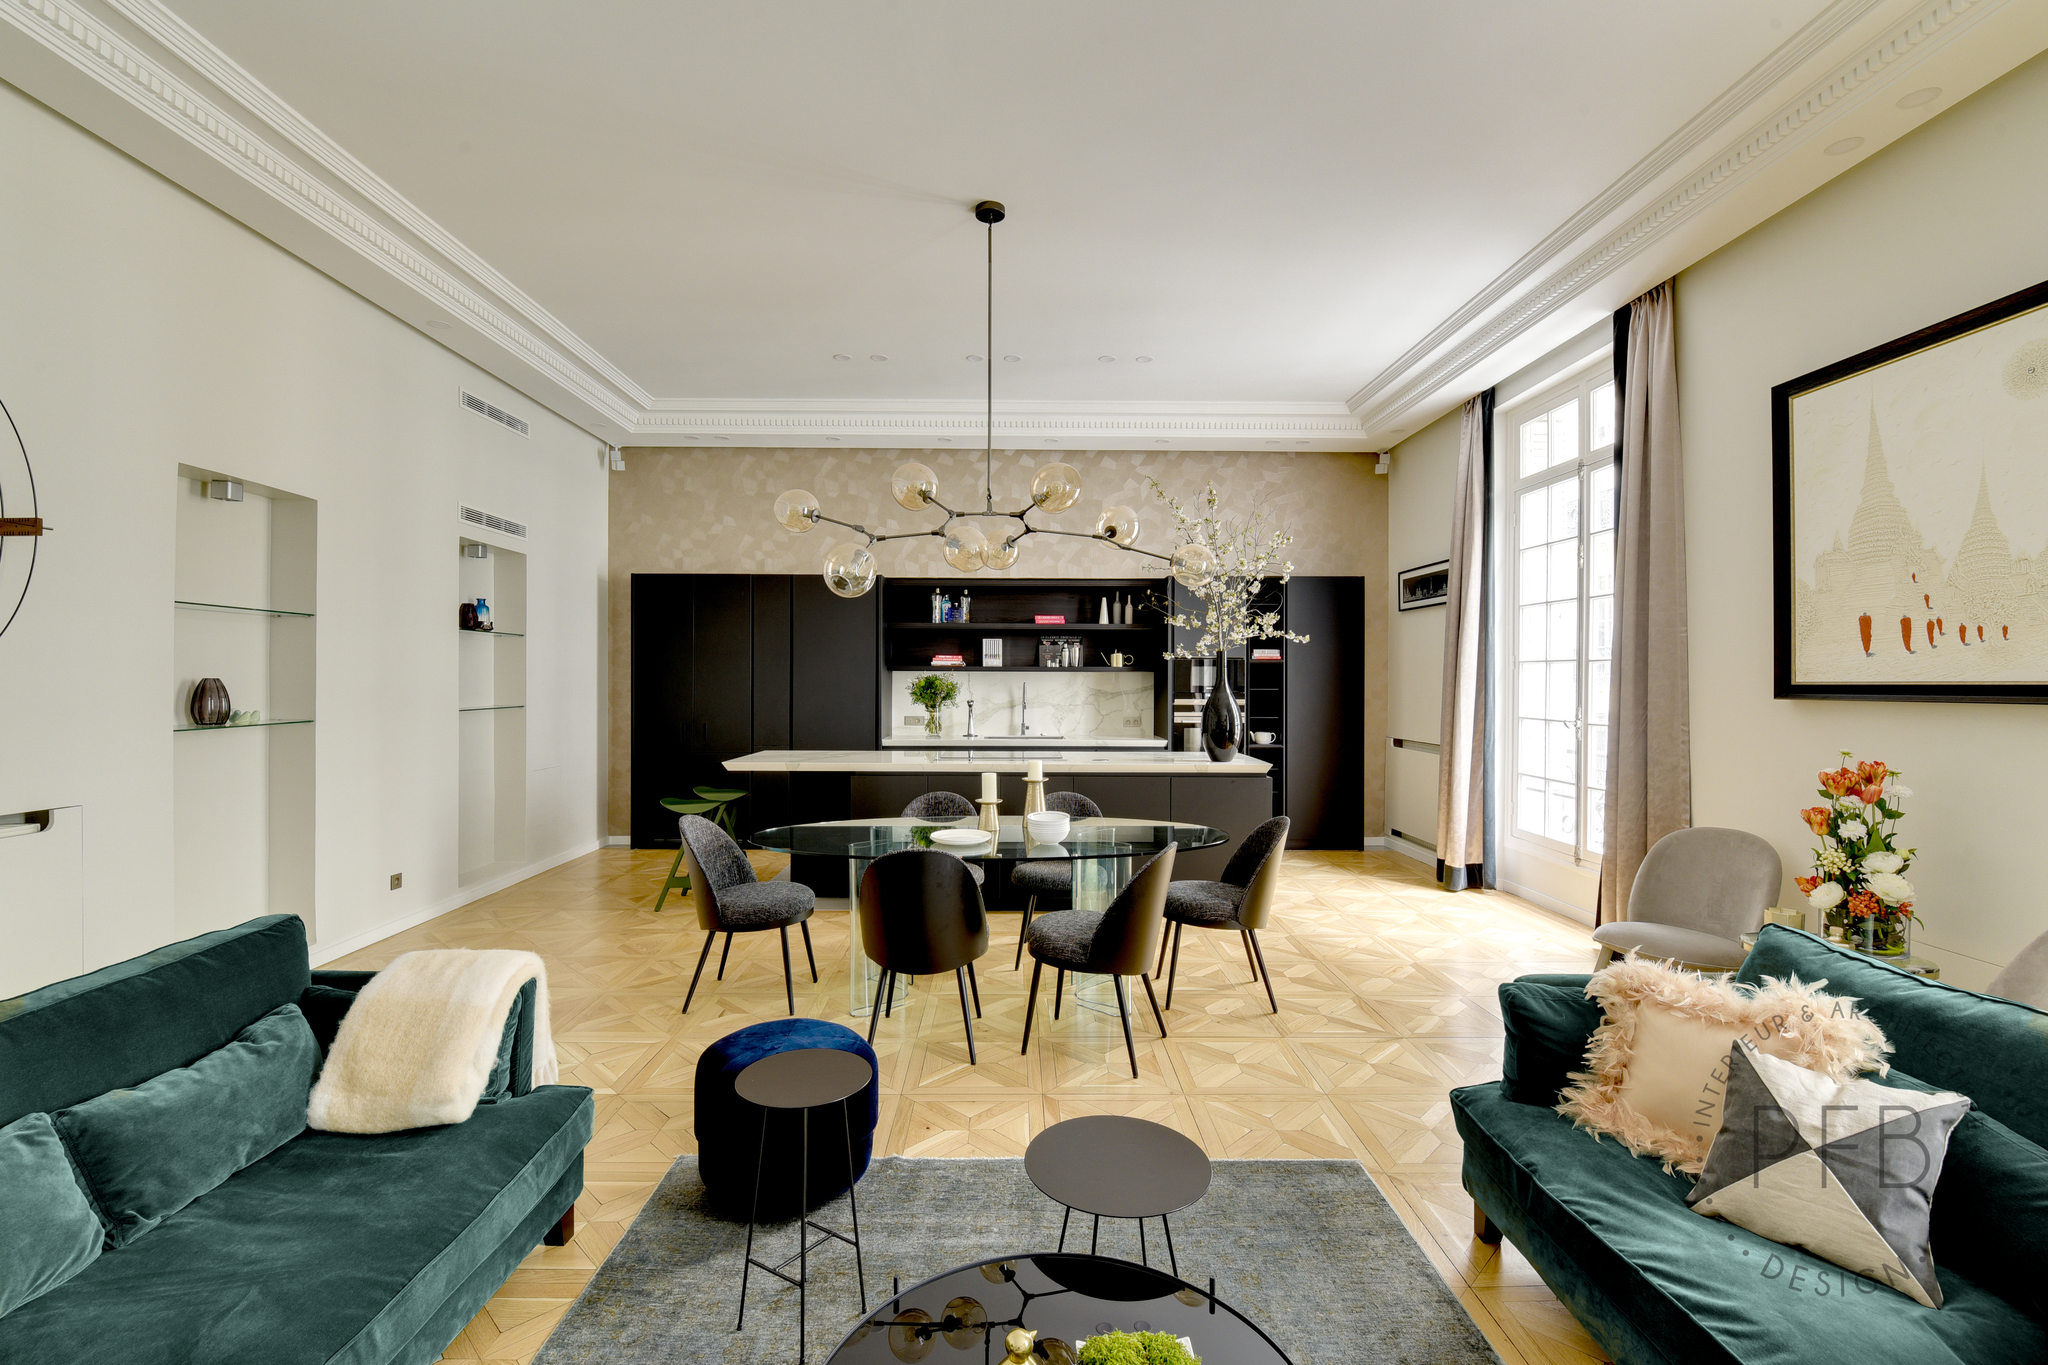 PFBDESIGN-{Artjan}-{appartement}-12.jpg